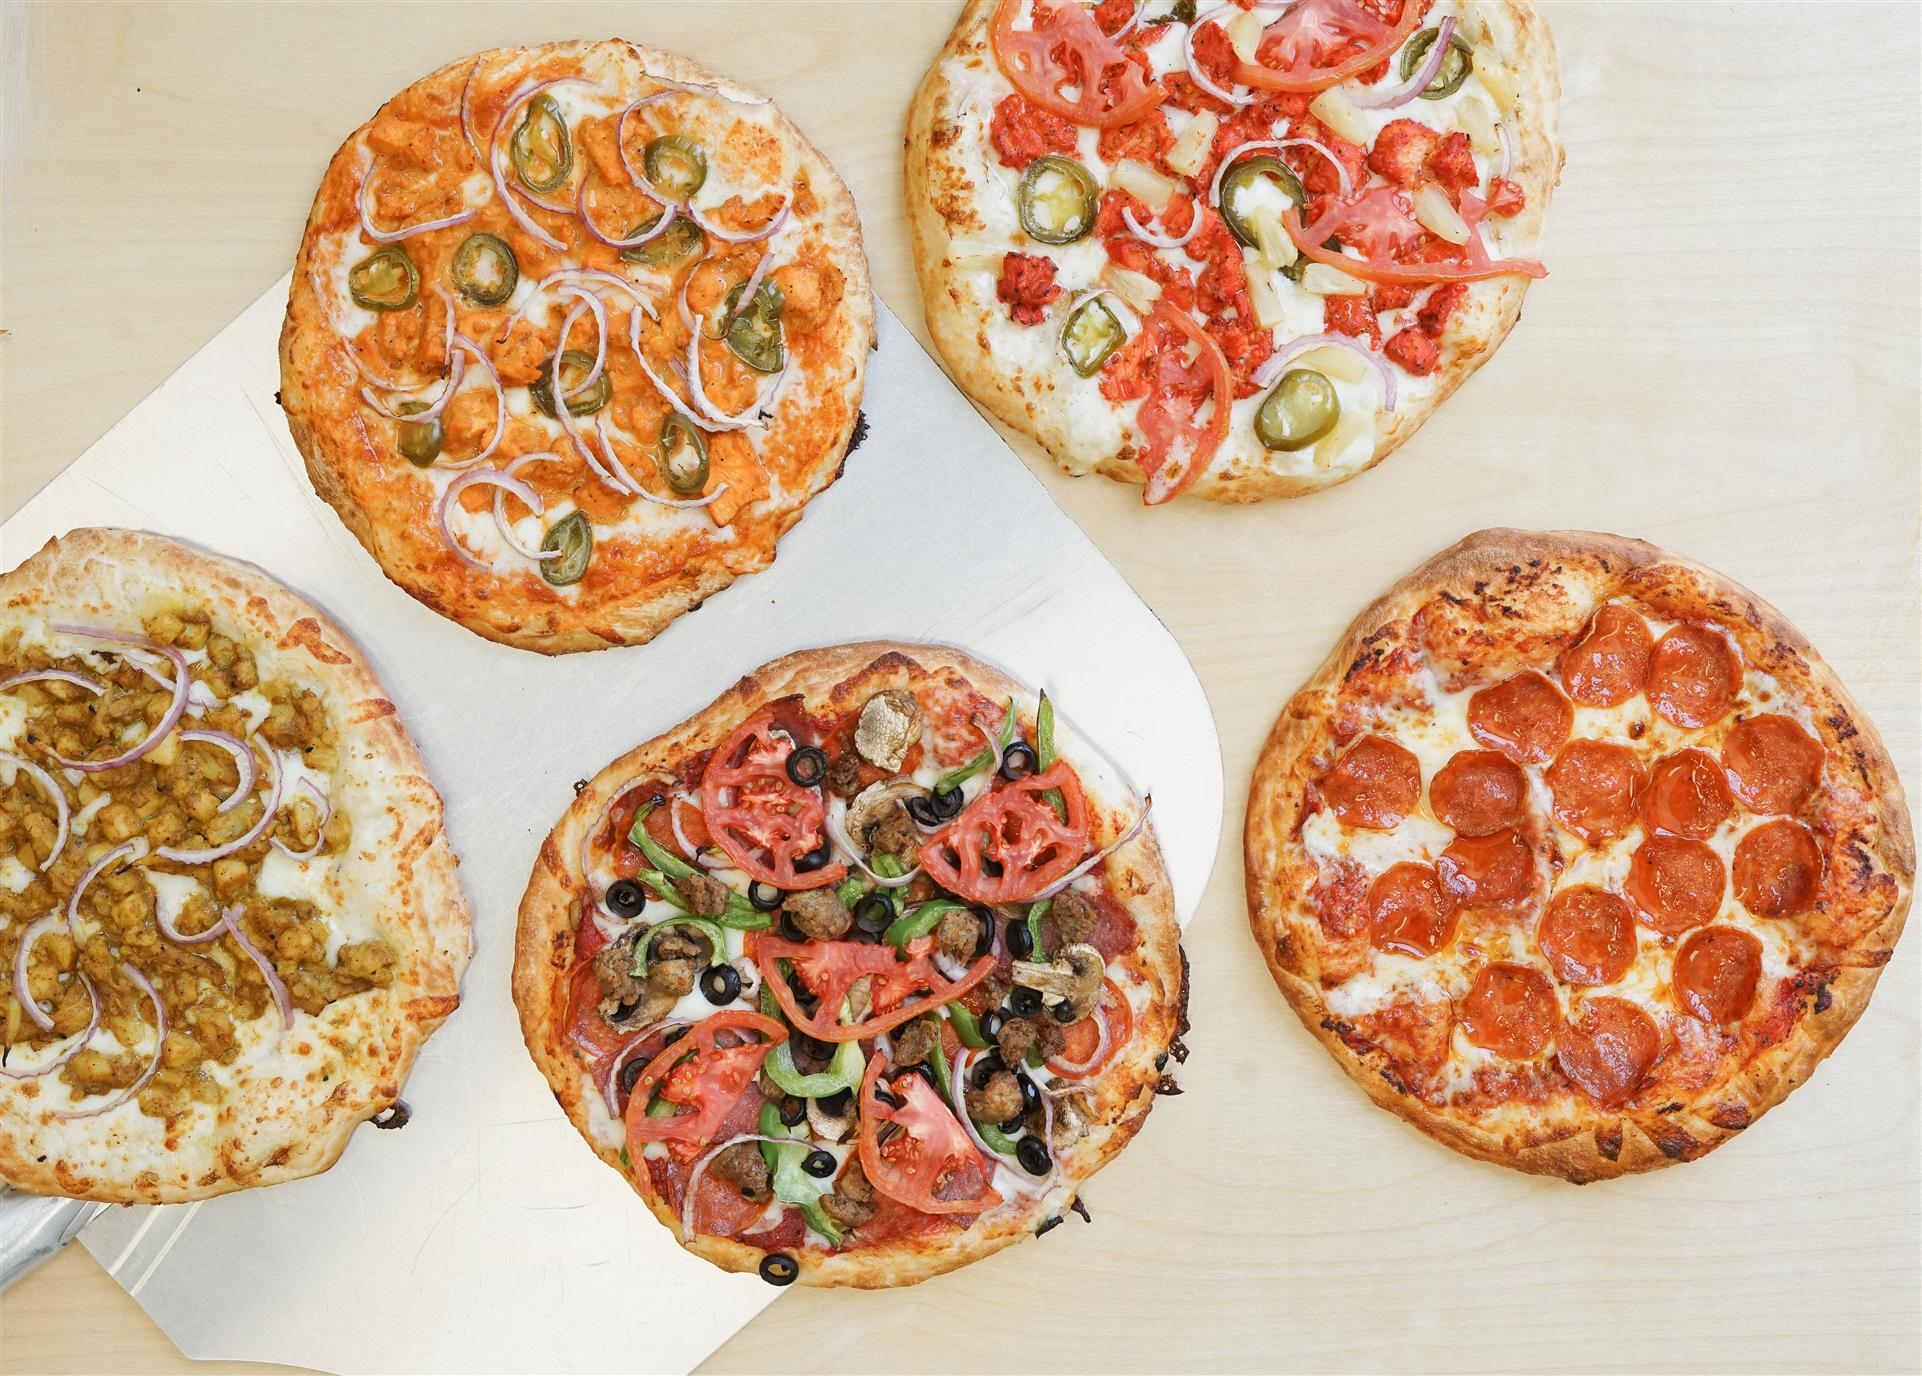 5 different types of pizzas with different toppings